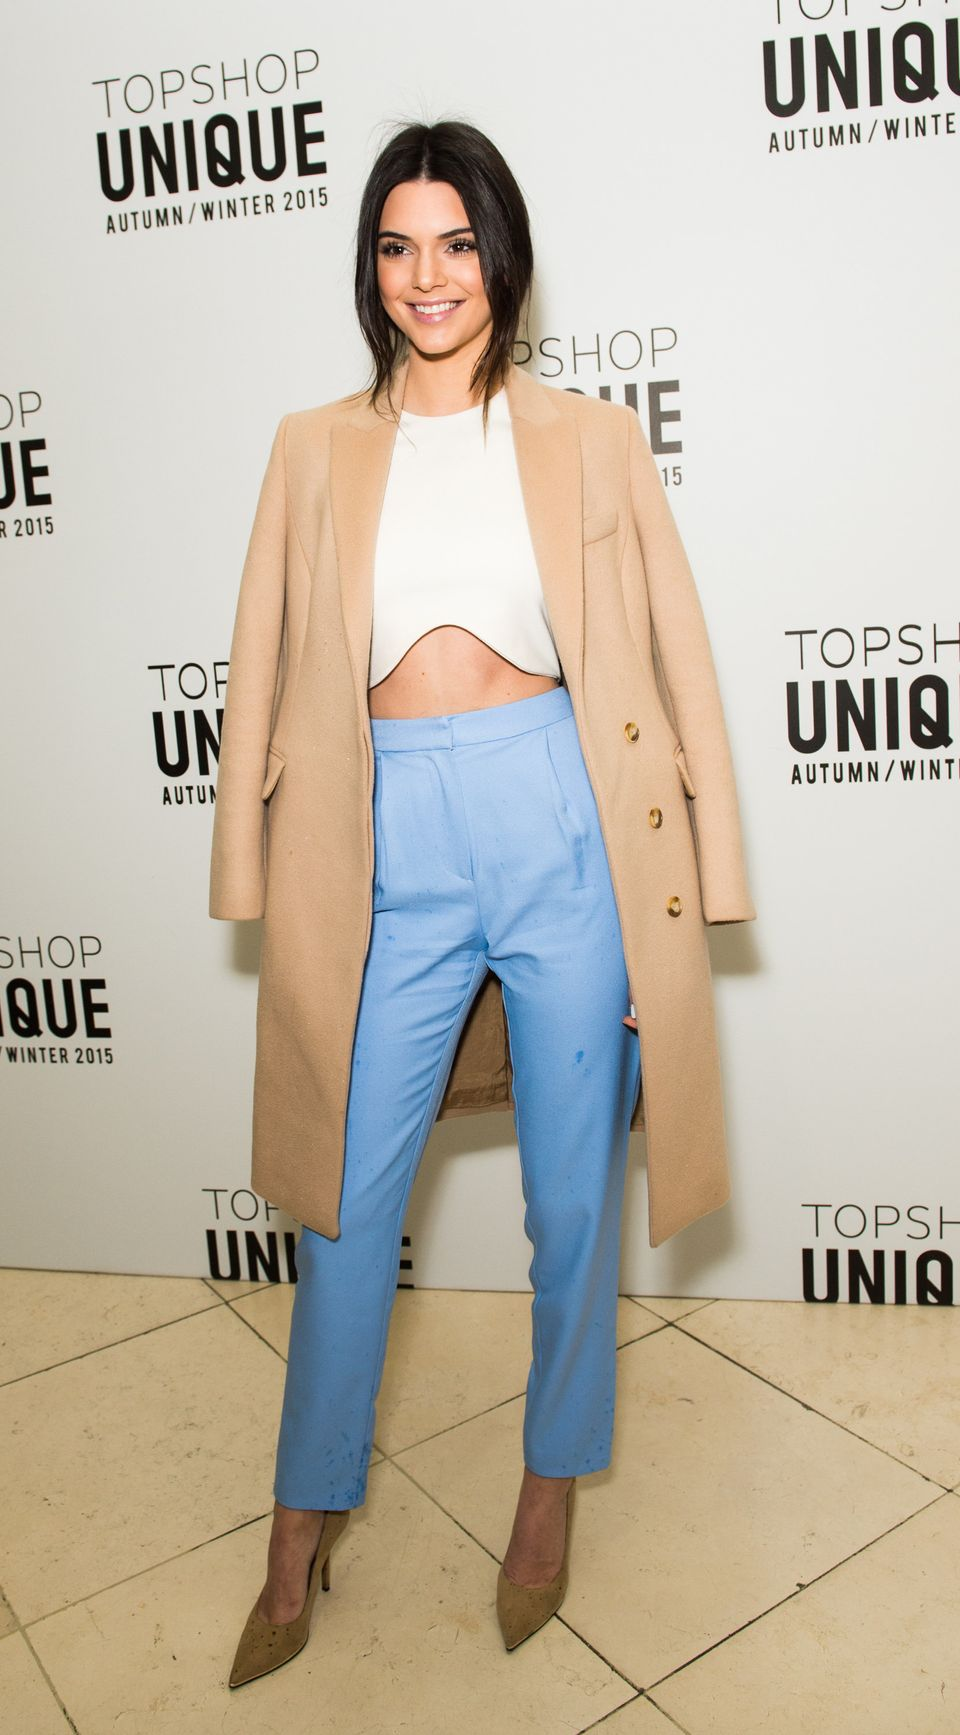 At the Topshop Unique London Fashion Week show on Feb. 22.